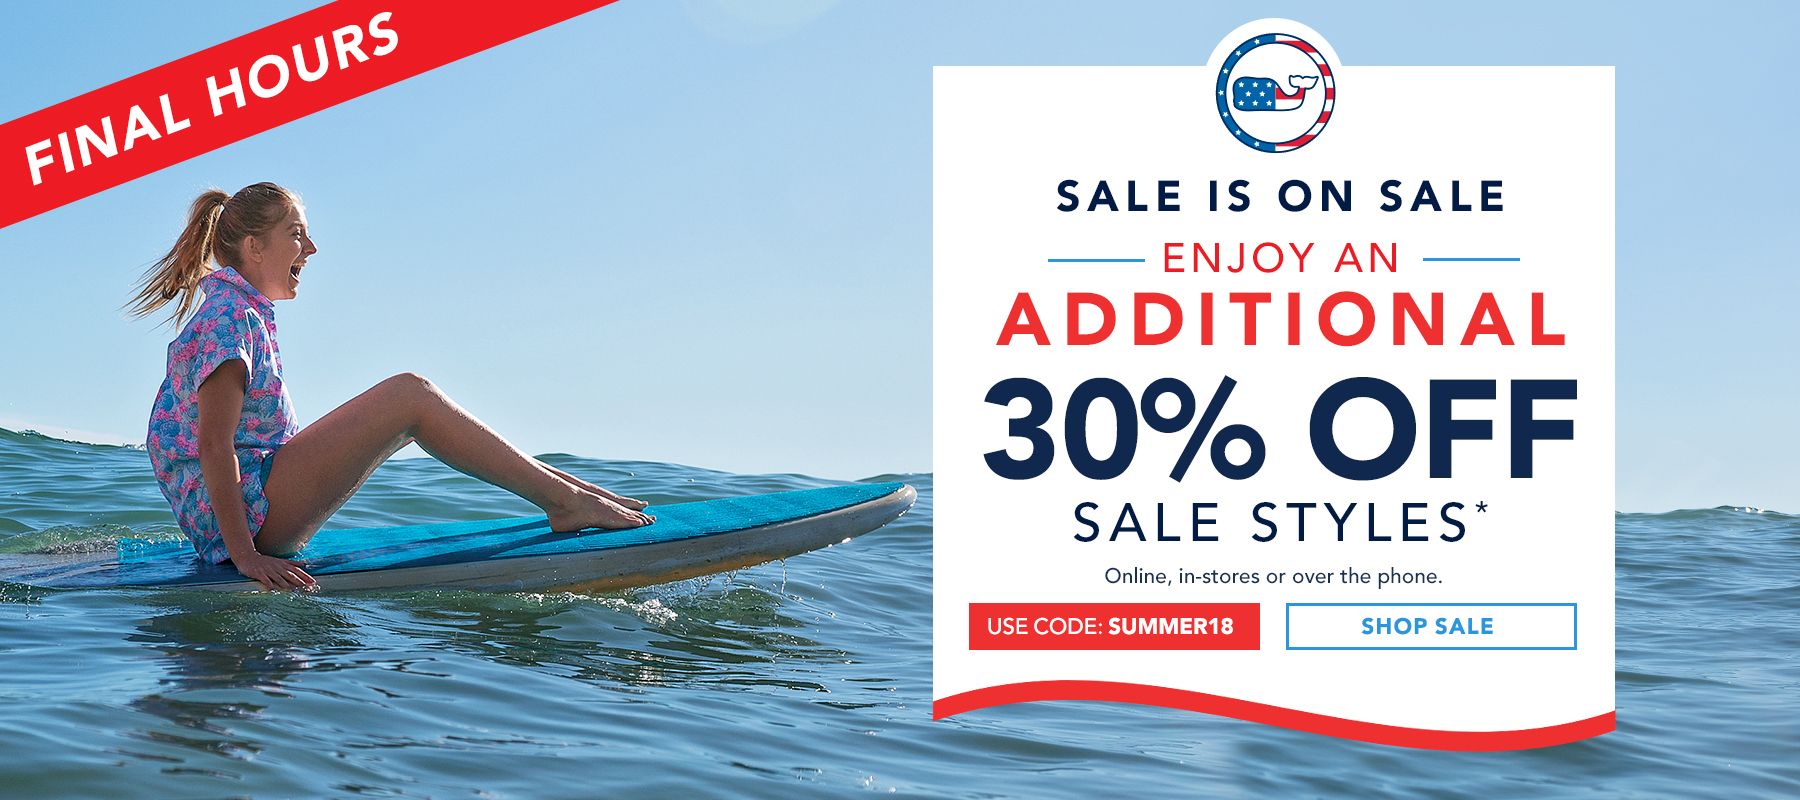 Today's Vineyard Vines special offer: Free Ground Shipping On All Orders Over $